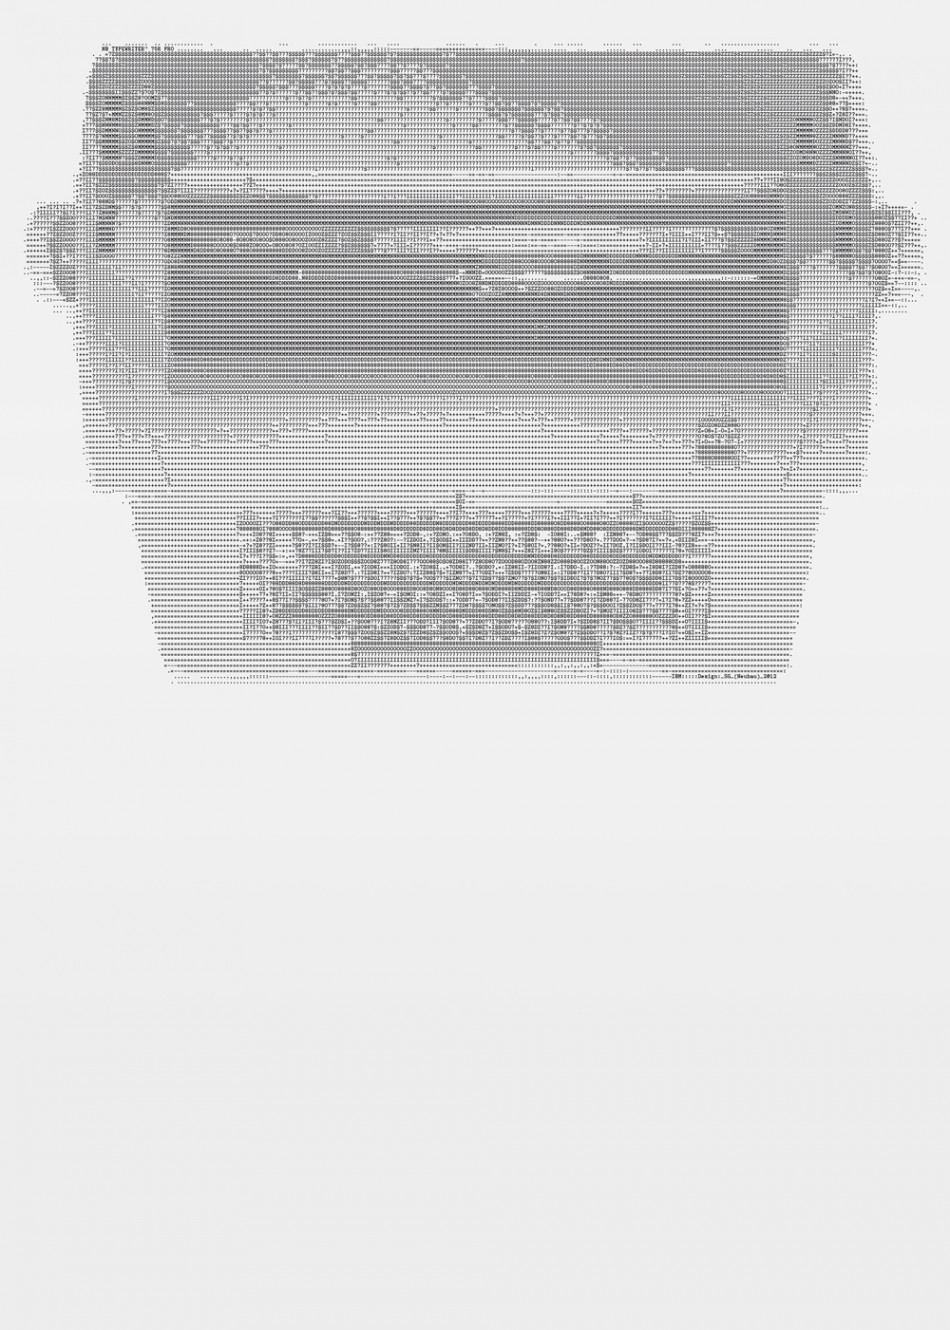 NB_TYPEWRITER_PRINT_IBM